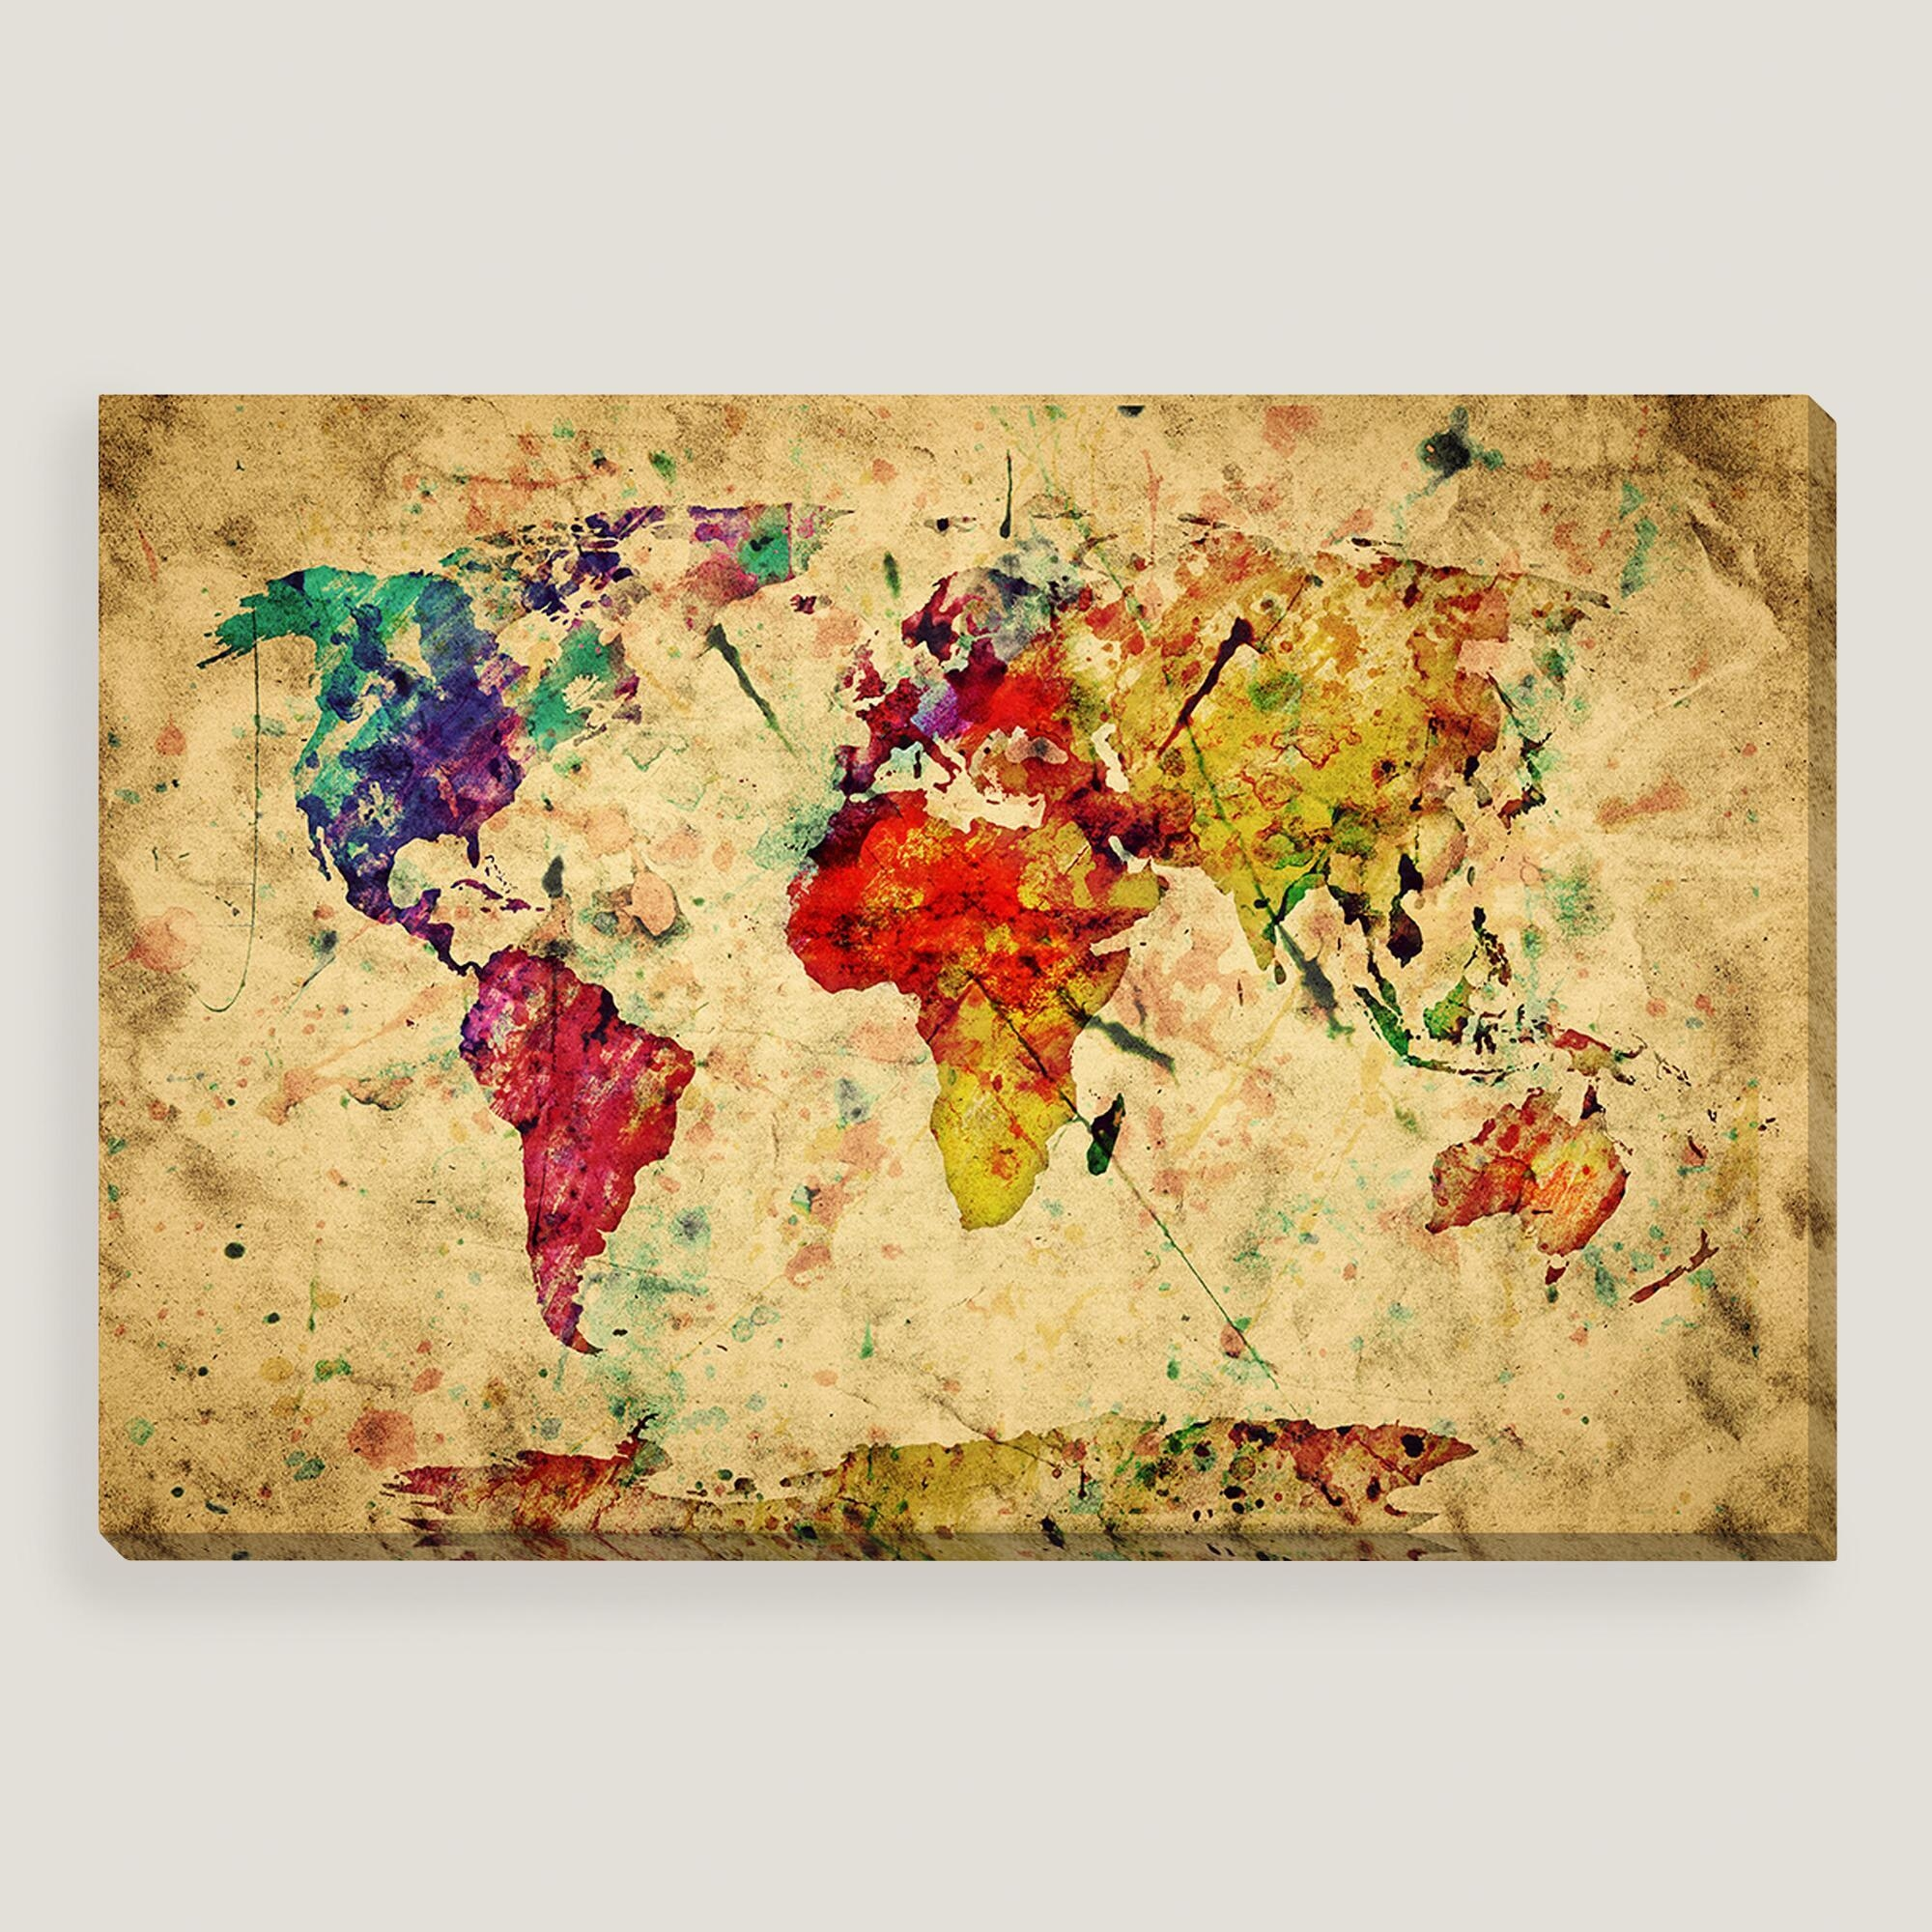 Wall Art Design Ideas: Modern Painting Vintage World Map Wall Art Regarding Vintage Map Wall Art (View 12 of 20)